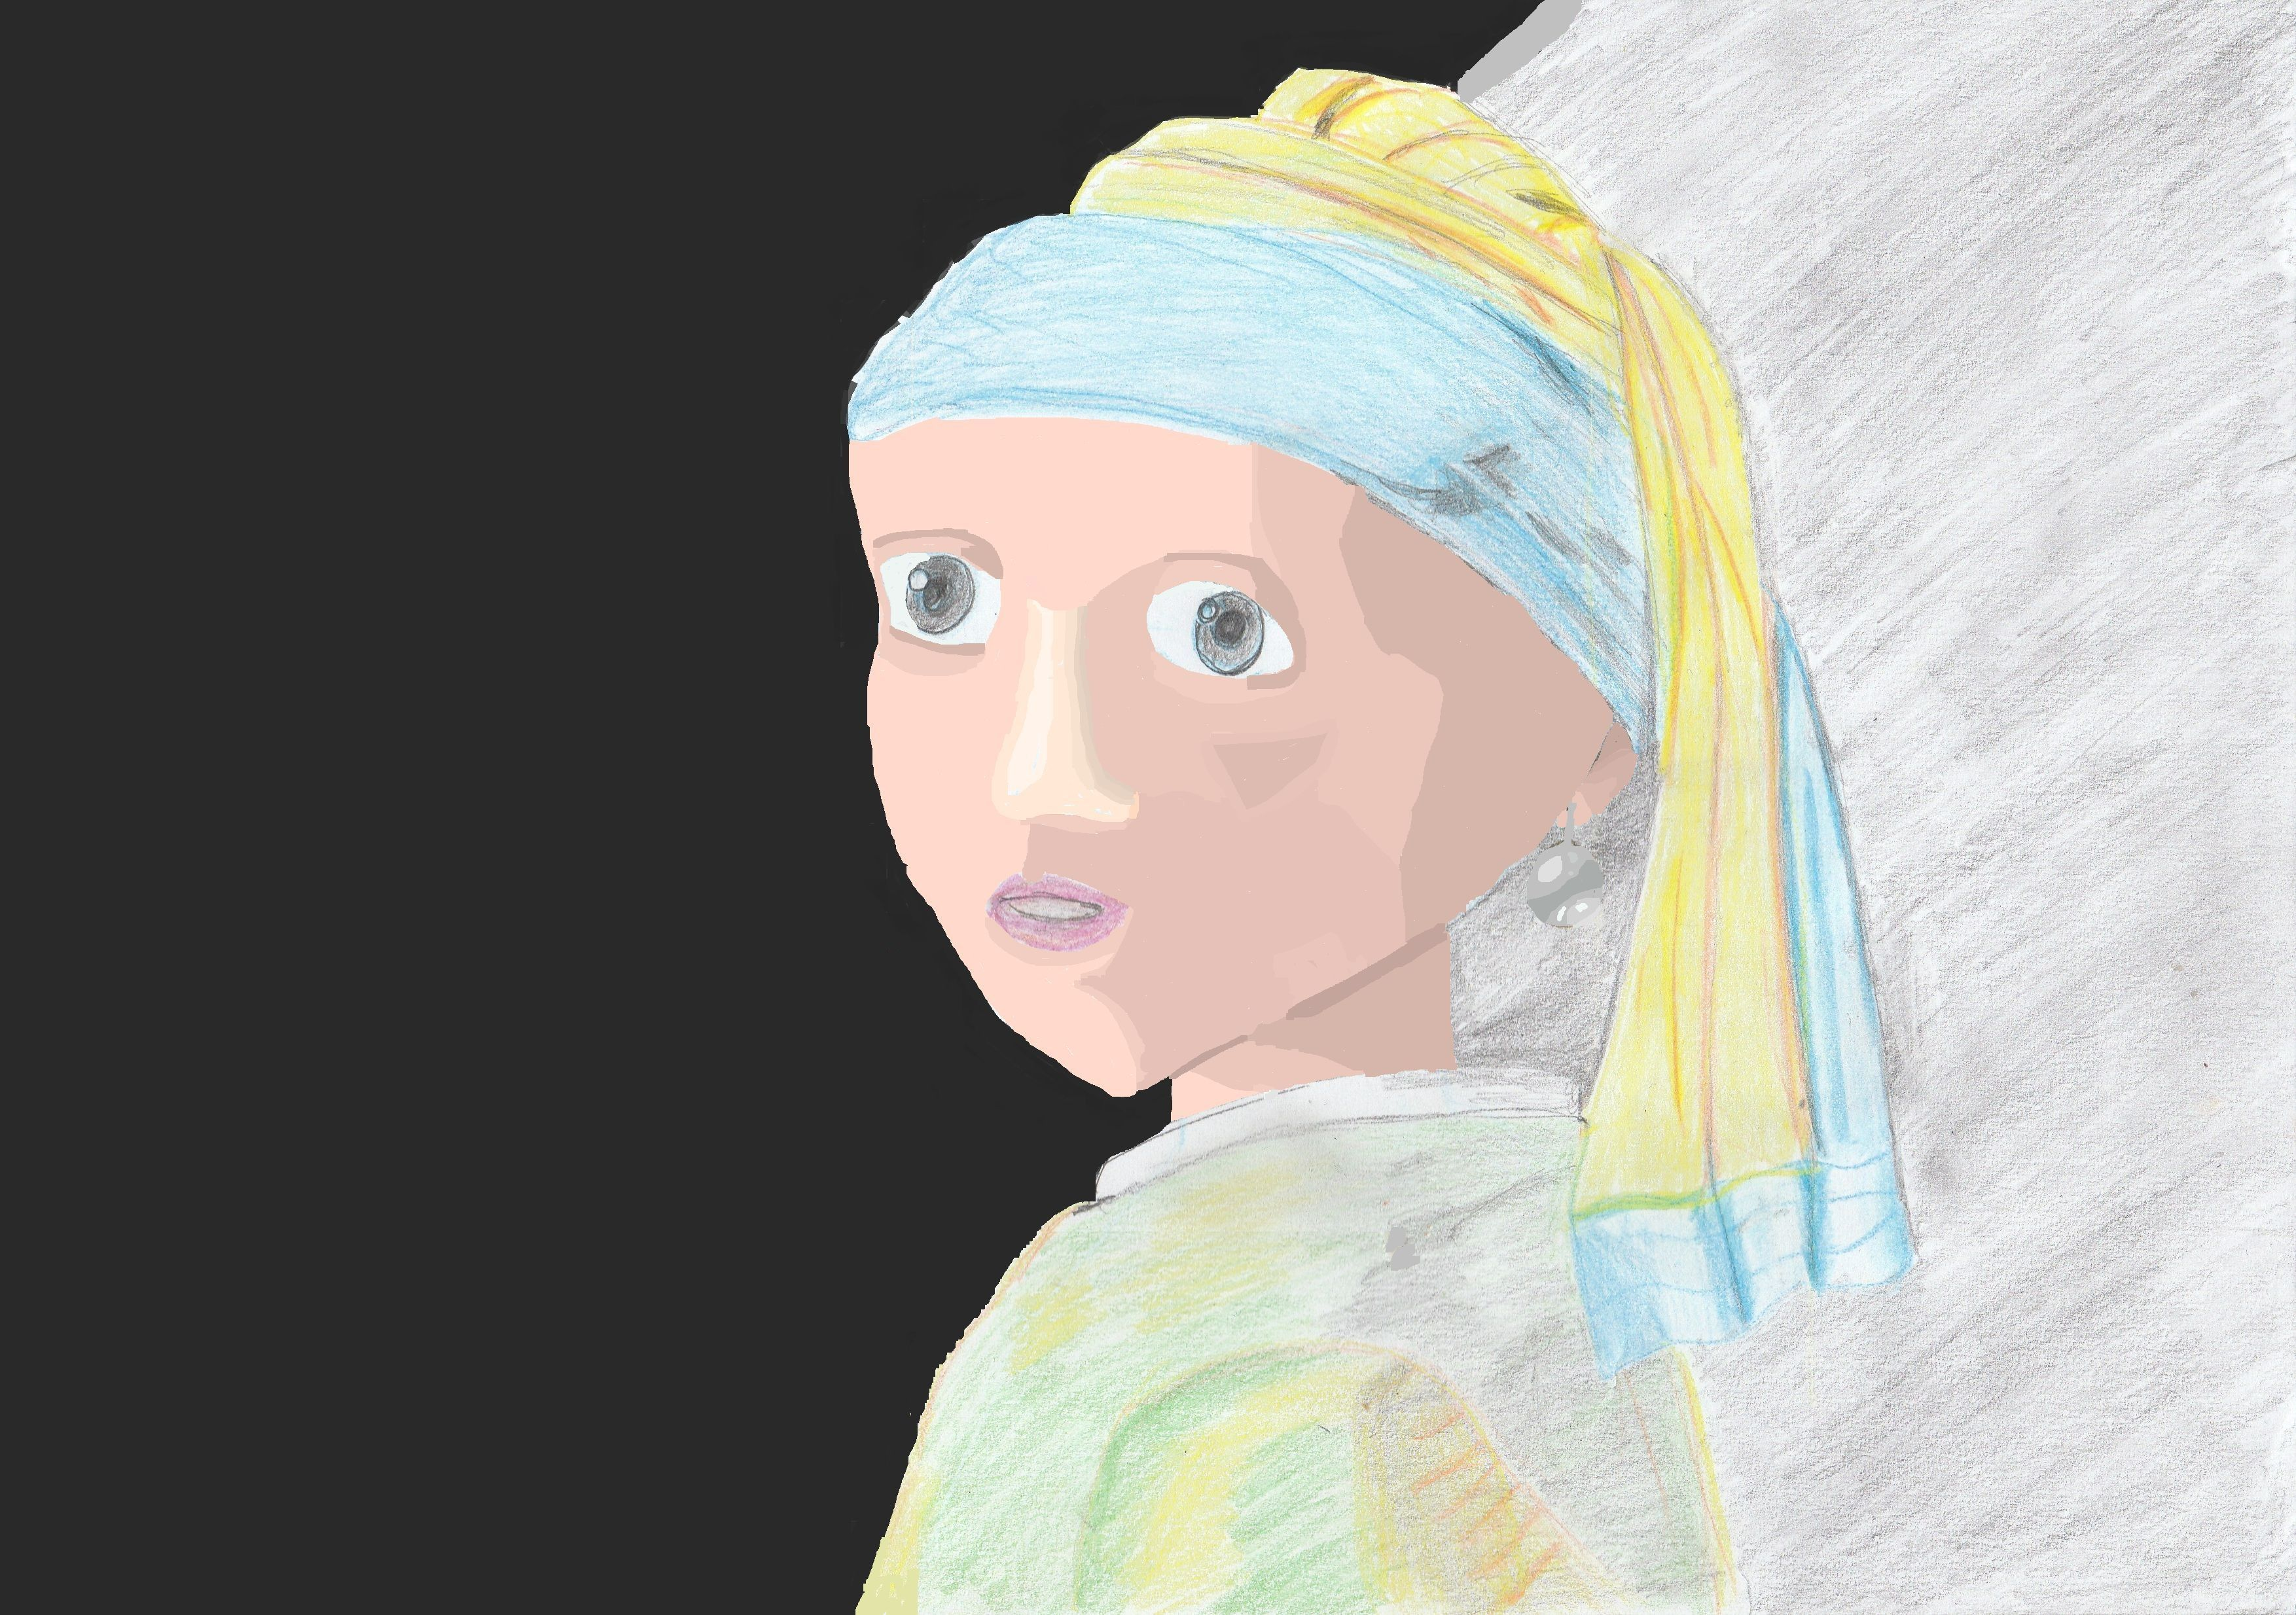 Rework the Girl with the pearl earring